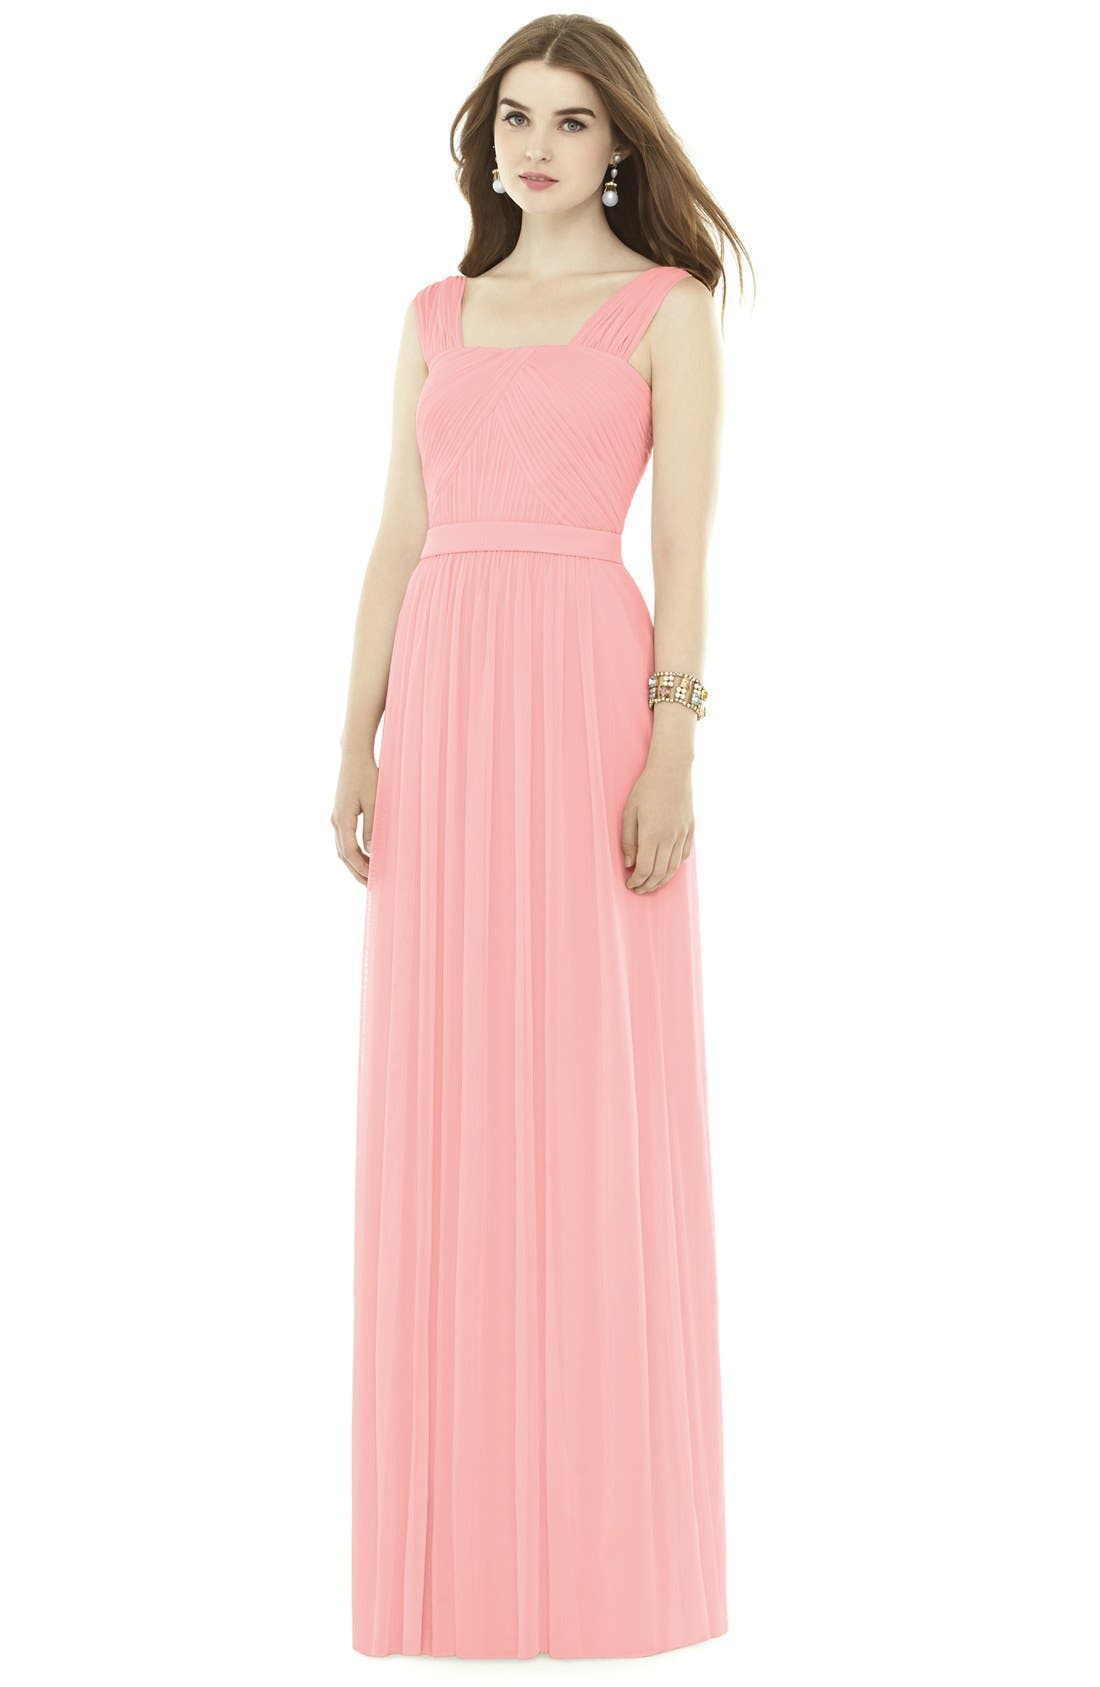 Pleat Chiffon Knit A-Line Gown with Belt,                         Main,                         color, 633